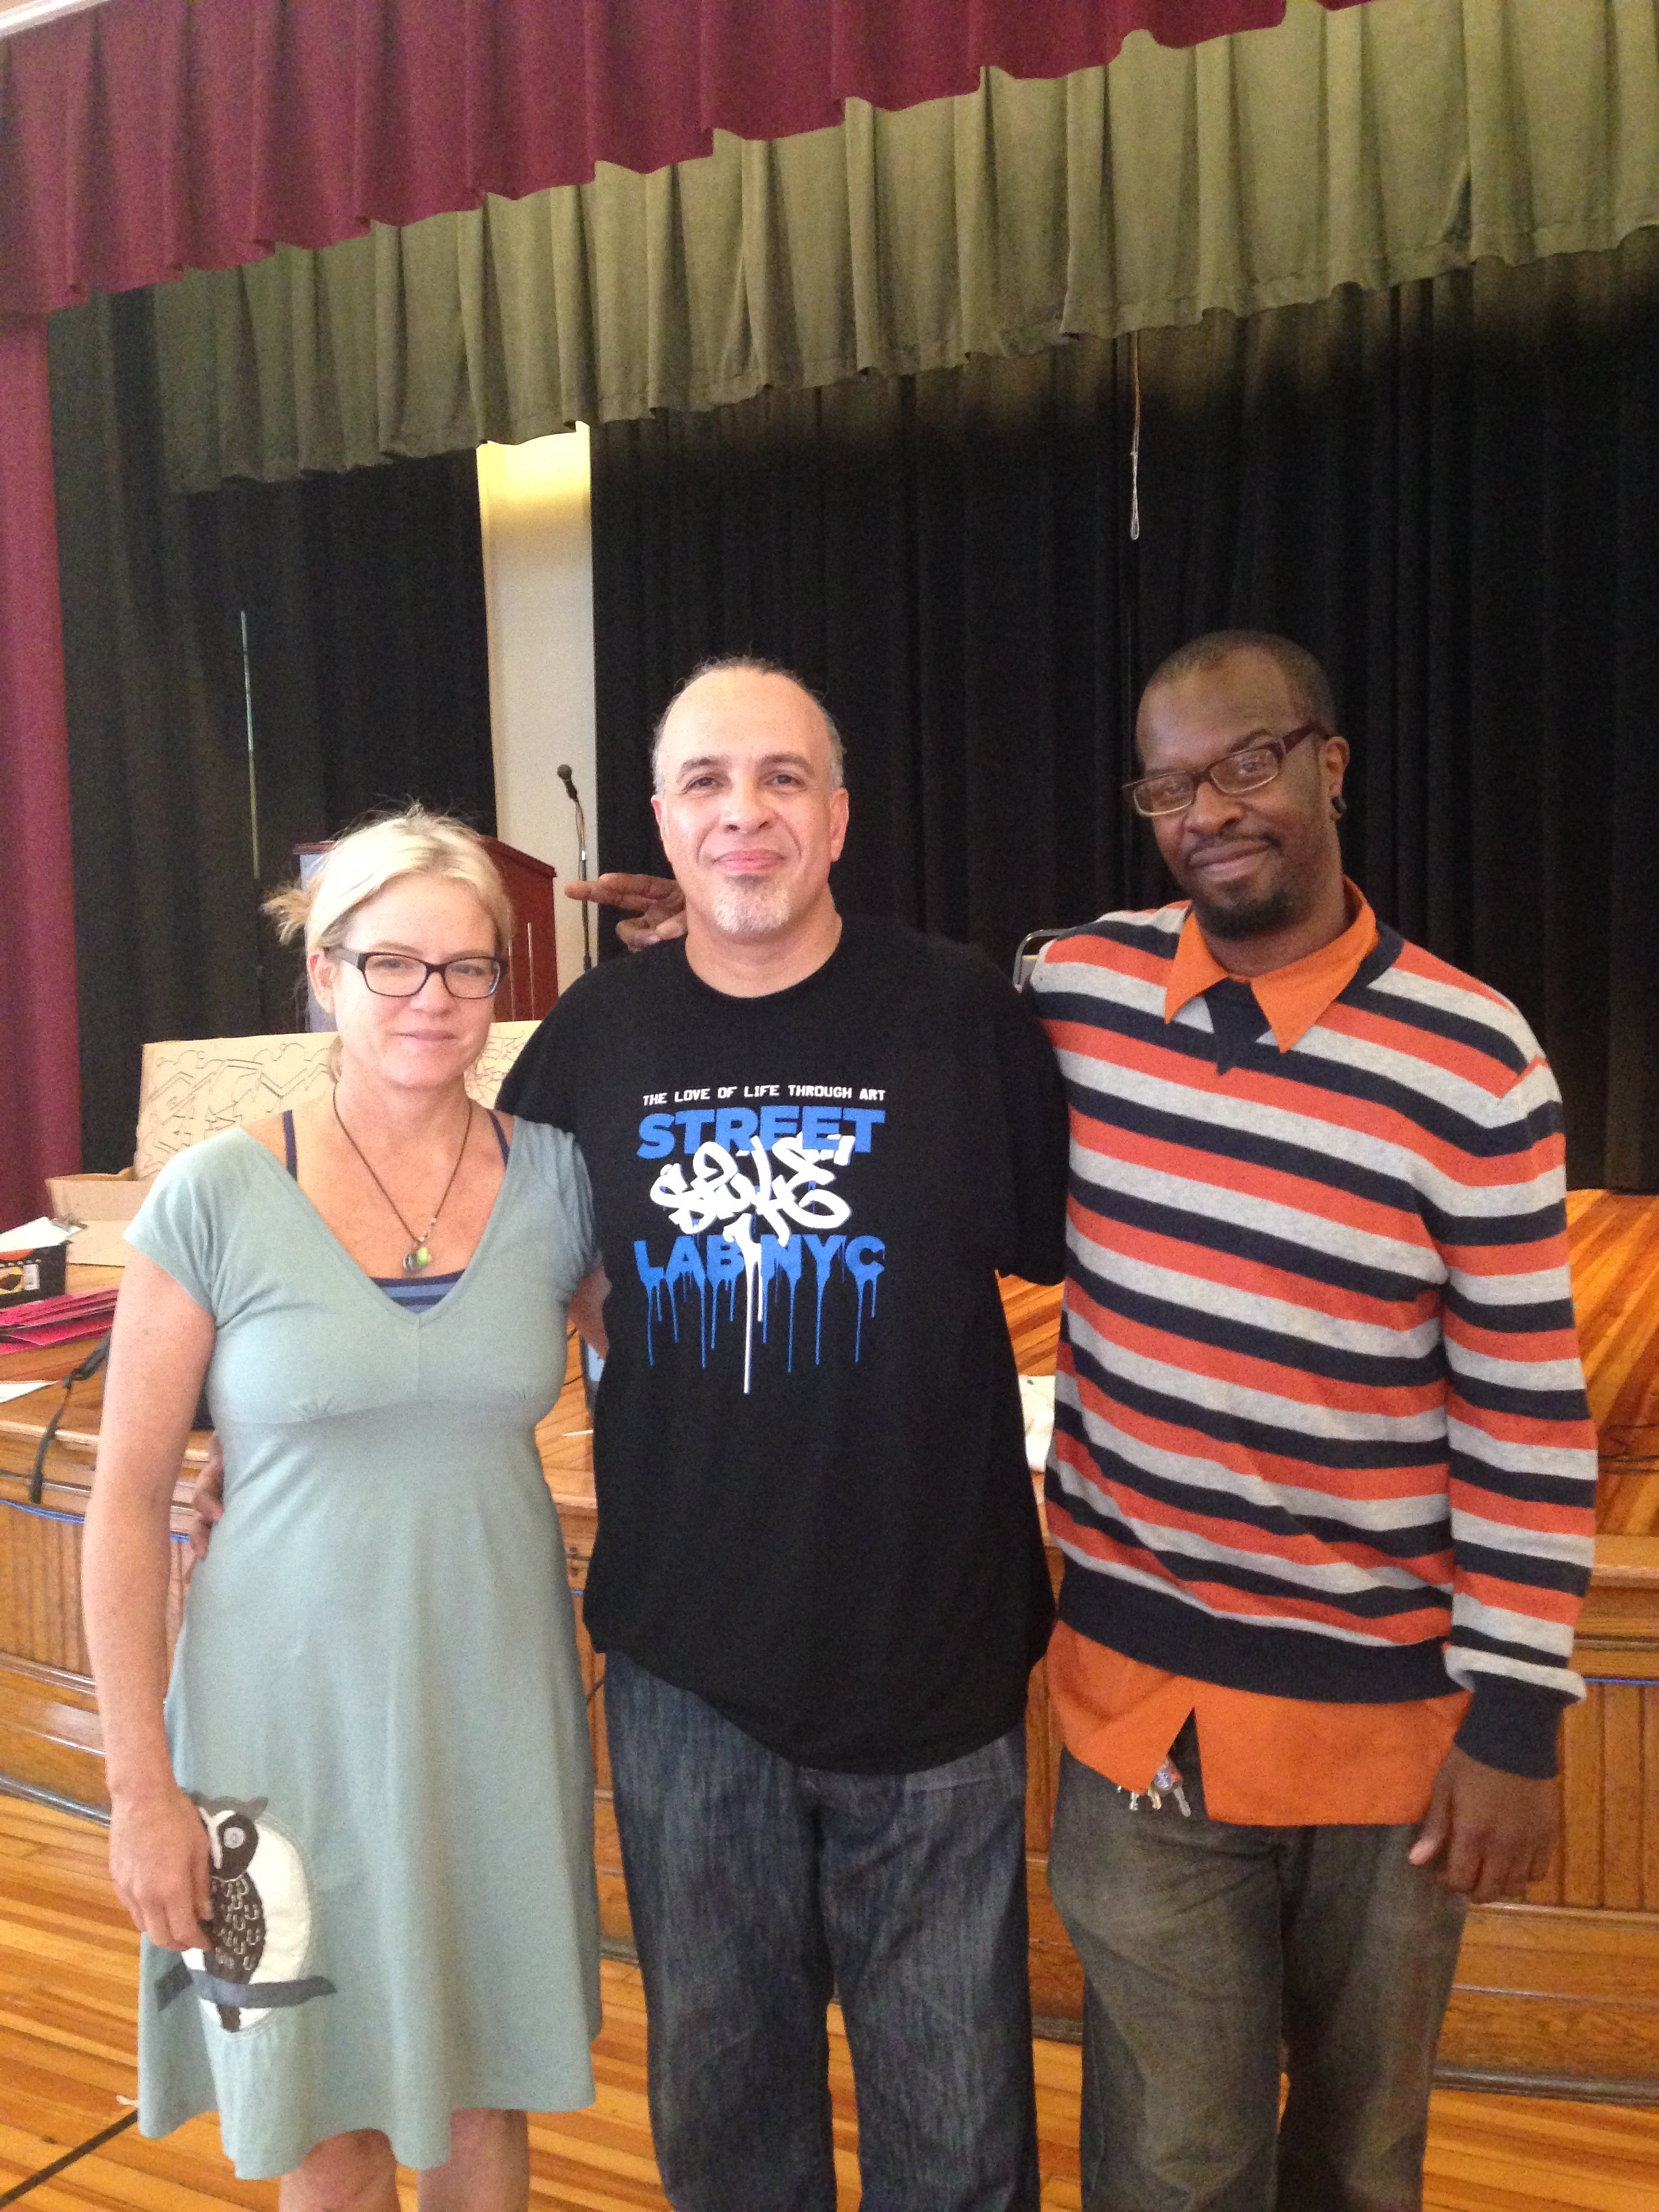 (L2R): Anne Chamblin, Pop Master Fable, Mikemetic after Fable's workshop at Patrick Henry School of Science and Art (2014)